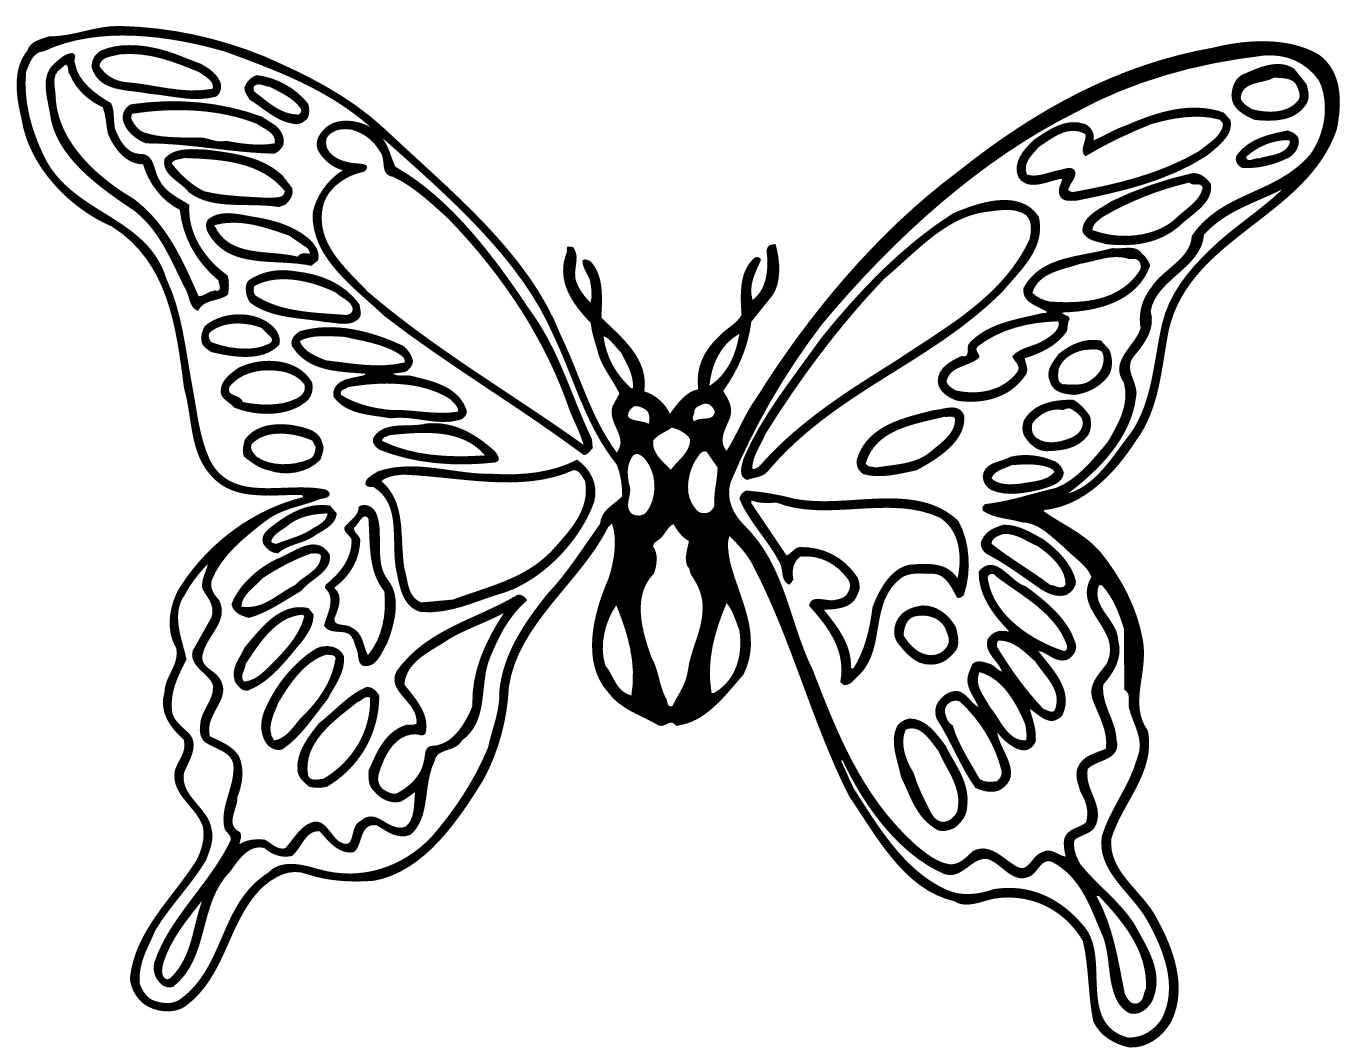 Free Butterfly Clip Art Black And White Butterfly Clip Art Butterfly Drawing Butterfly Black And White